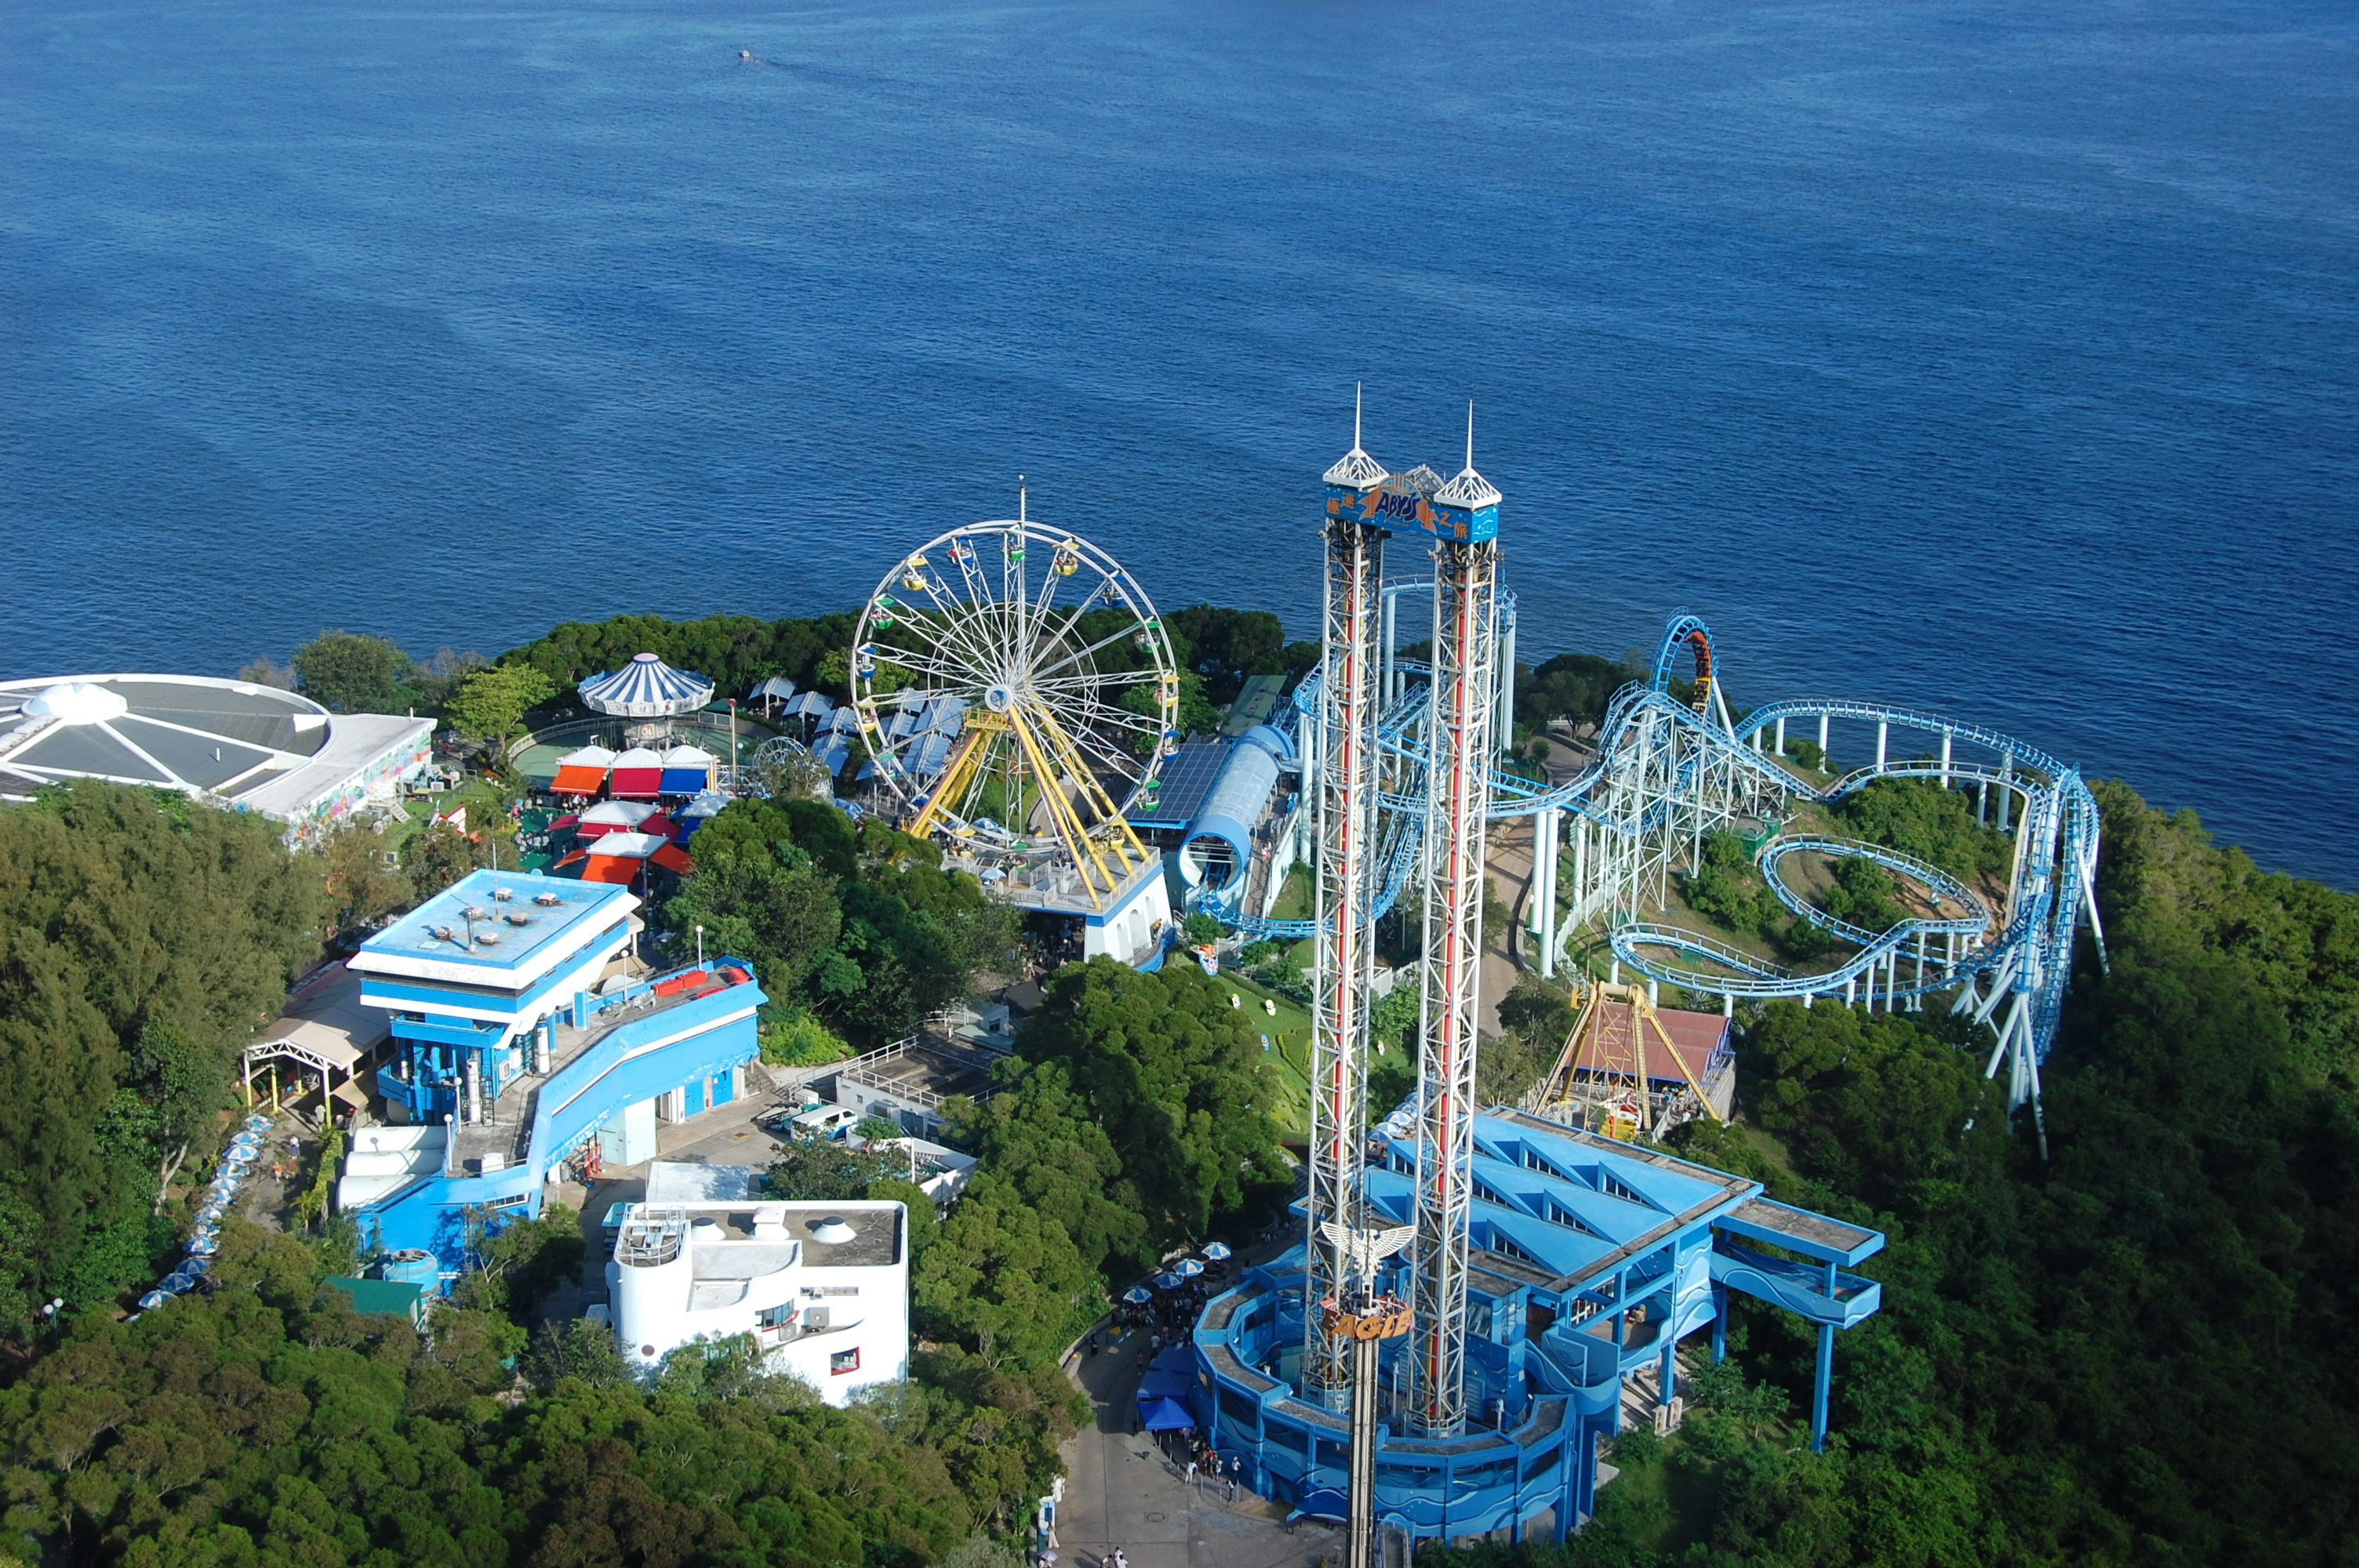 http://www.prasannaholidays.com/wp-content/uploads/2014/05/Rides_in_HK_Ocean_Park.jpg